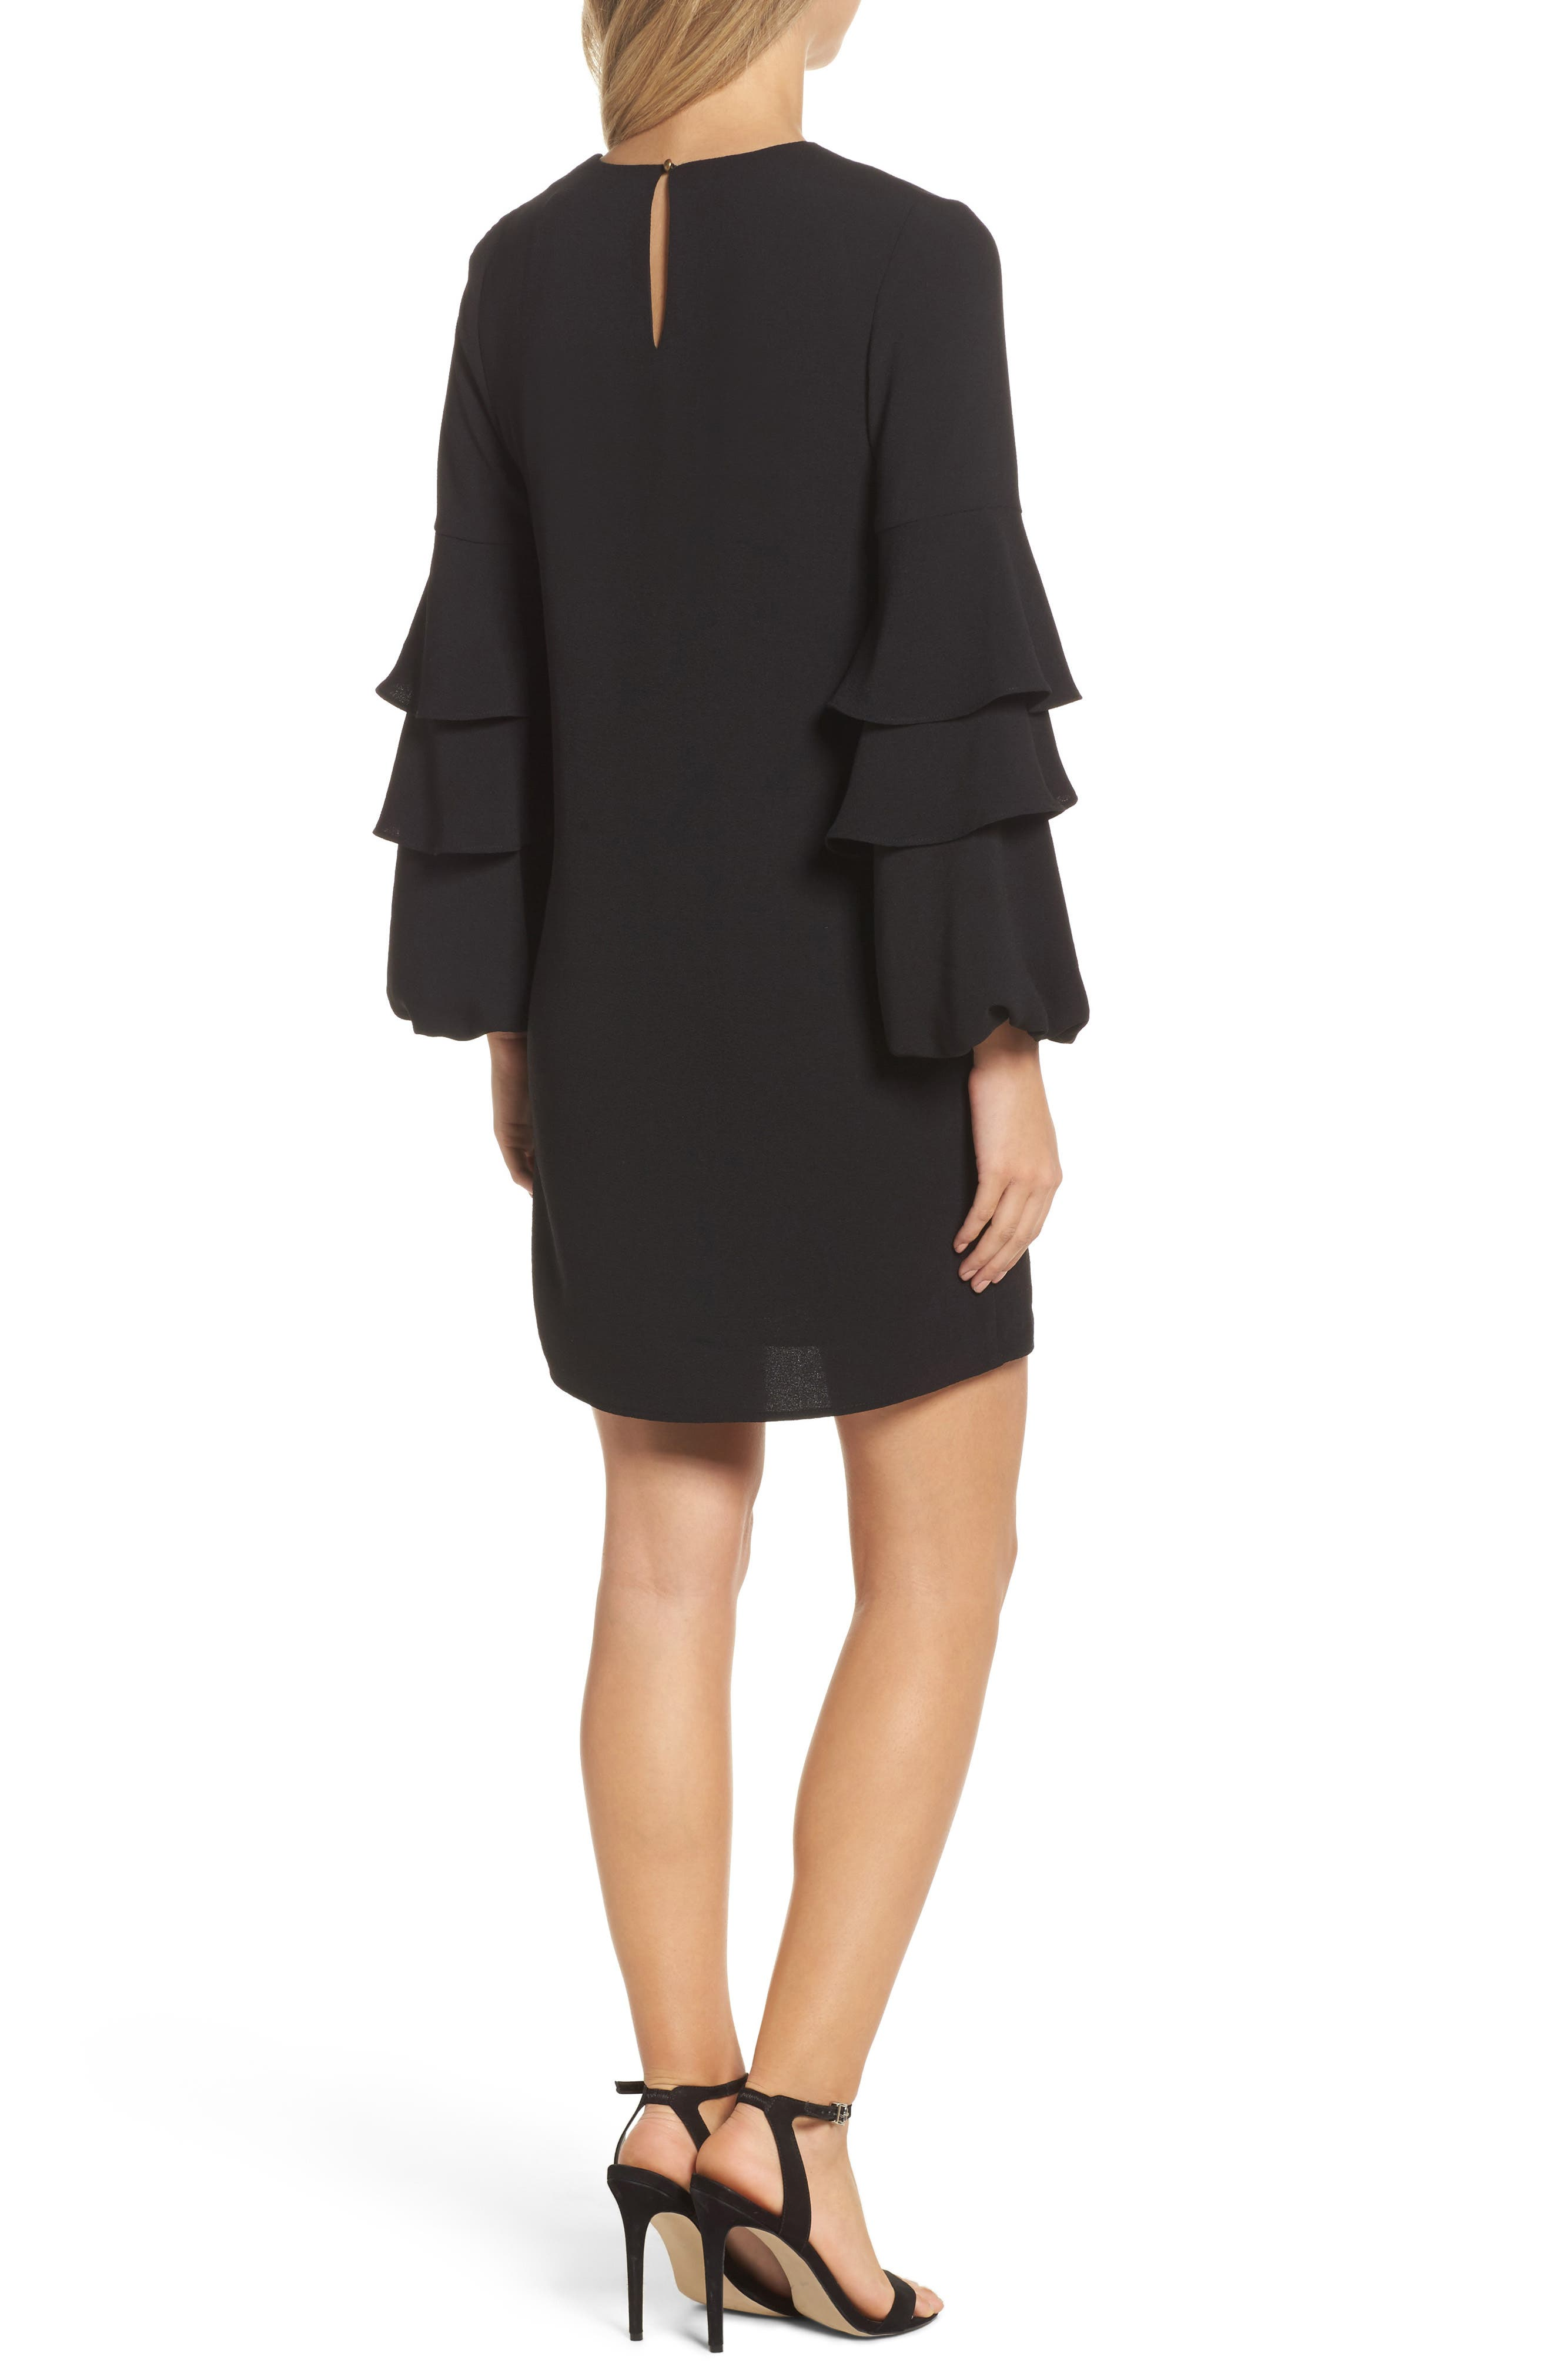 Tiered Ruffle Sleeve Dress,                             Alternate thumbnail 2, color,                             Black